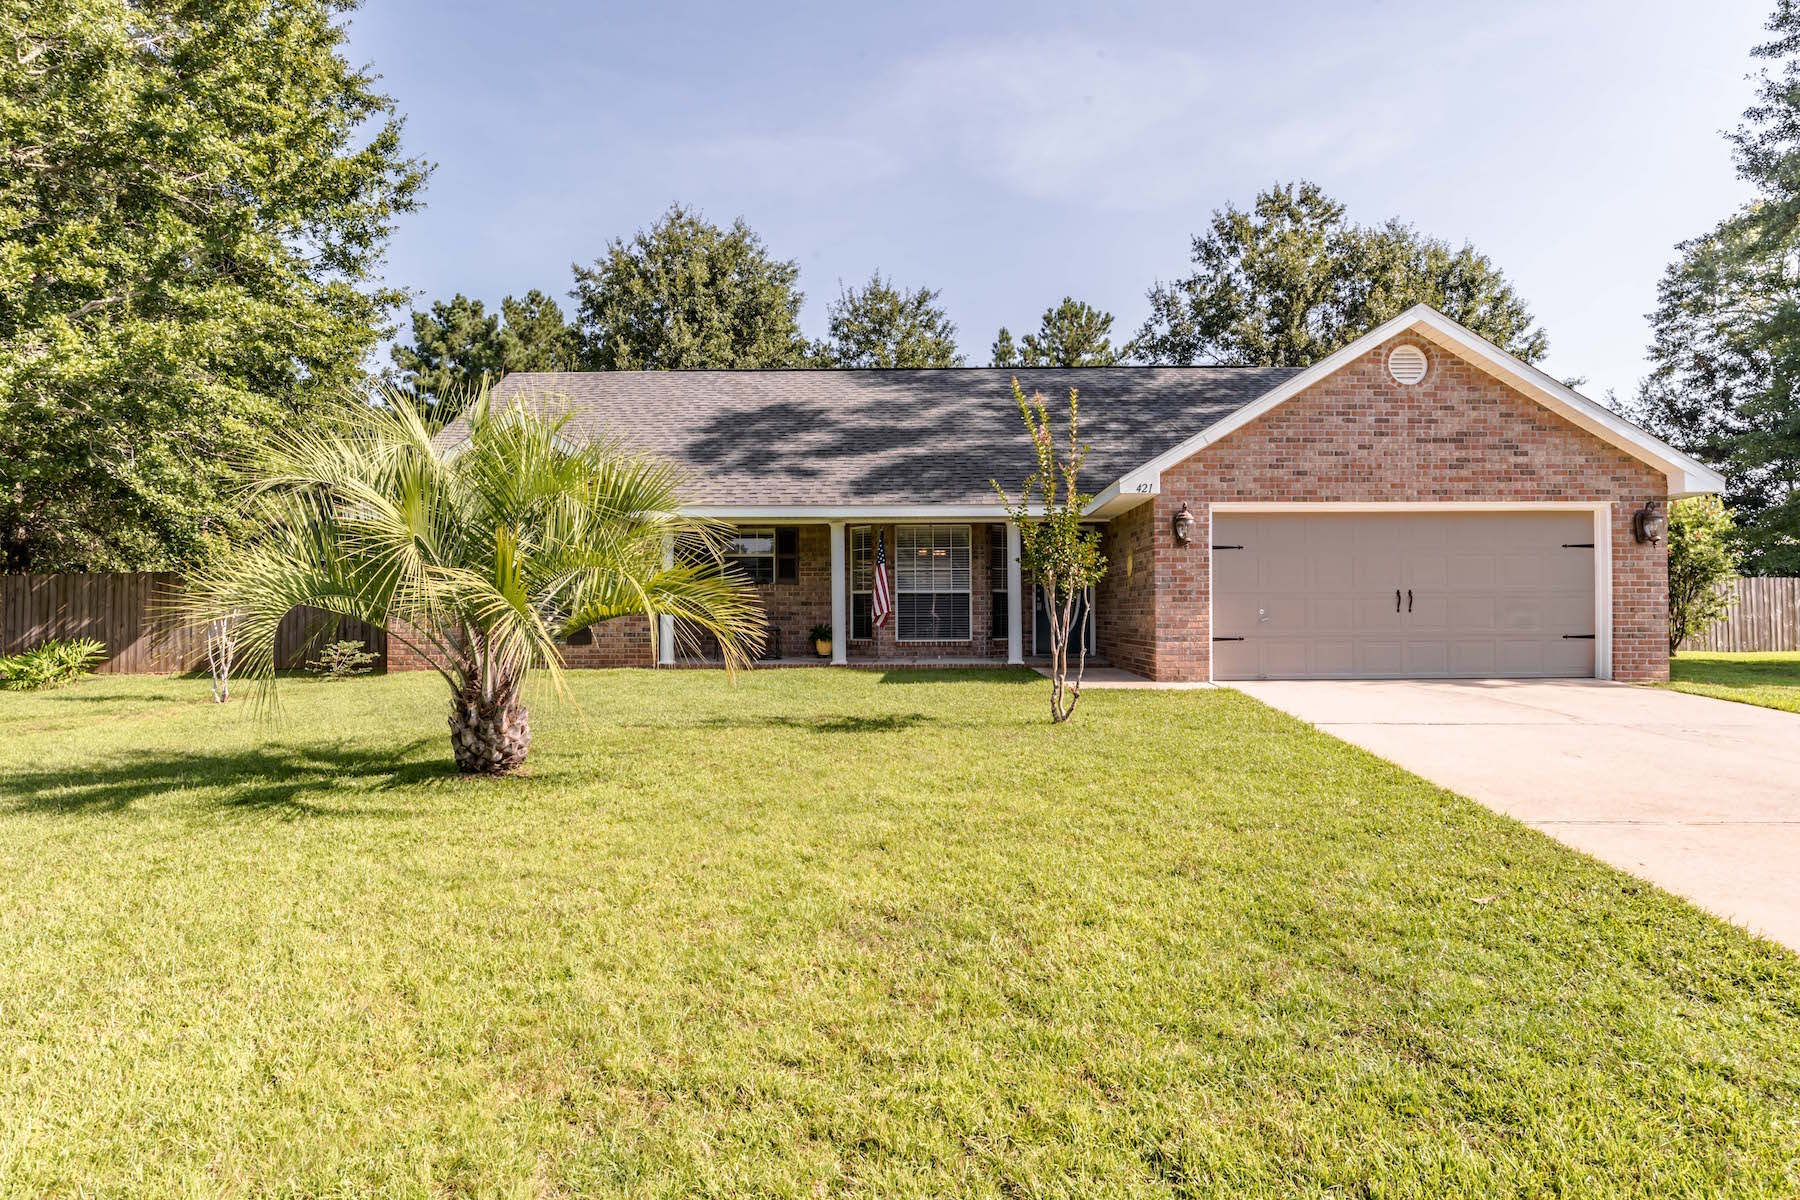 Single Family Home for Active at Monteith Oaks Foley 421 Dumoine Drive Foley, Alabama 36535 United States